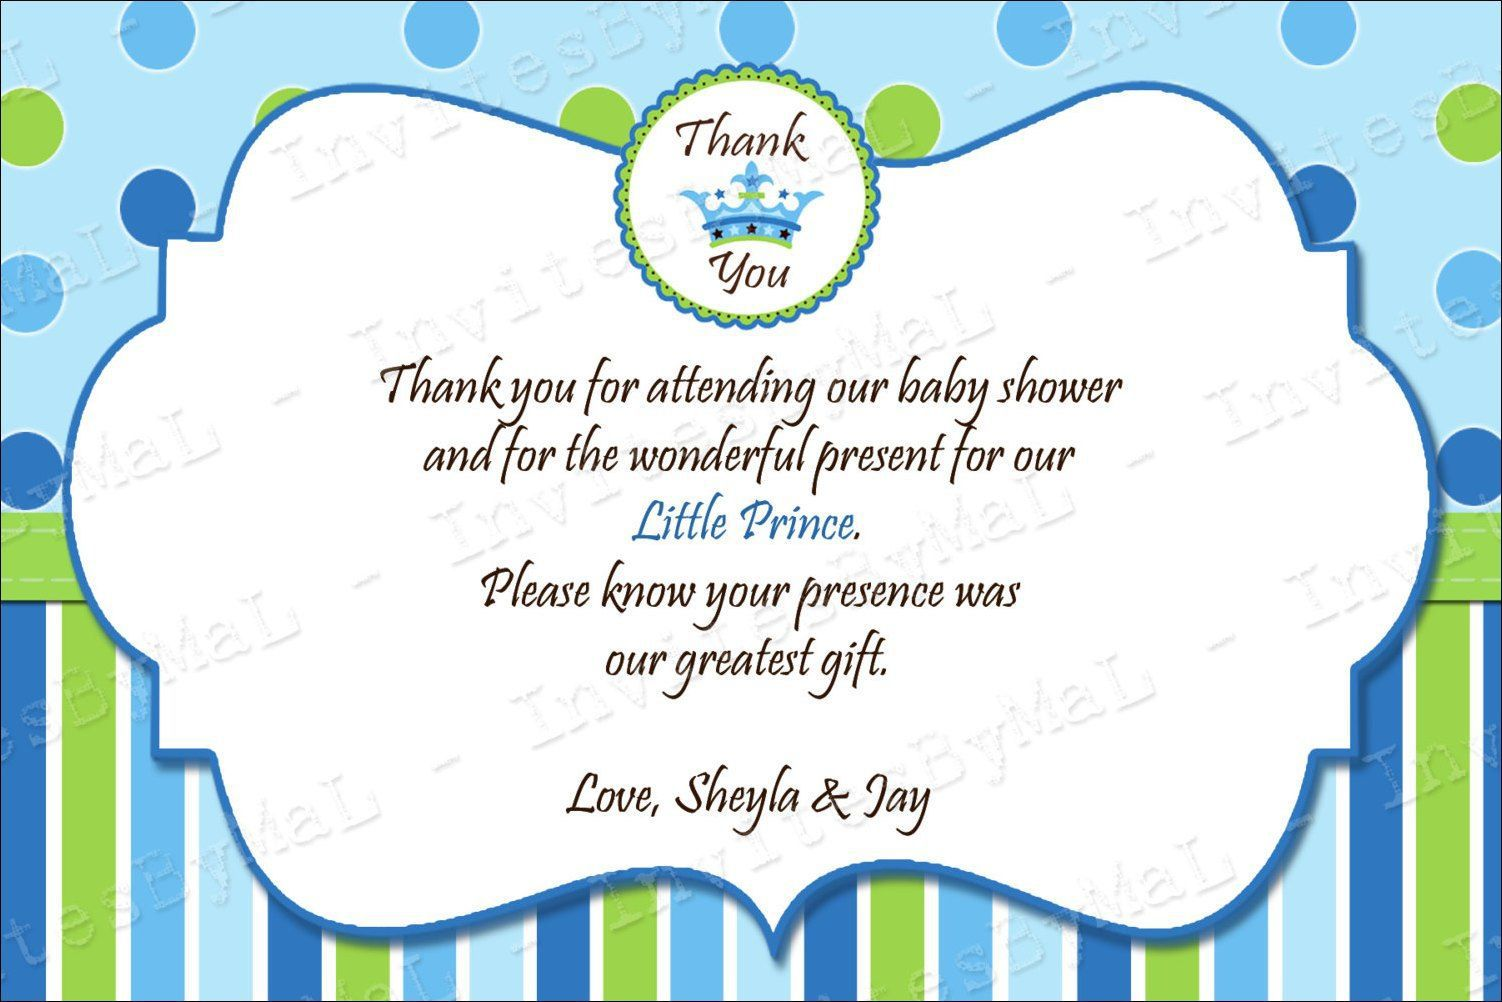 008 Unbelievable Thank You Note Wording For Baby Shower Gift Picture  Card Sample Example LetterFull